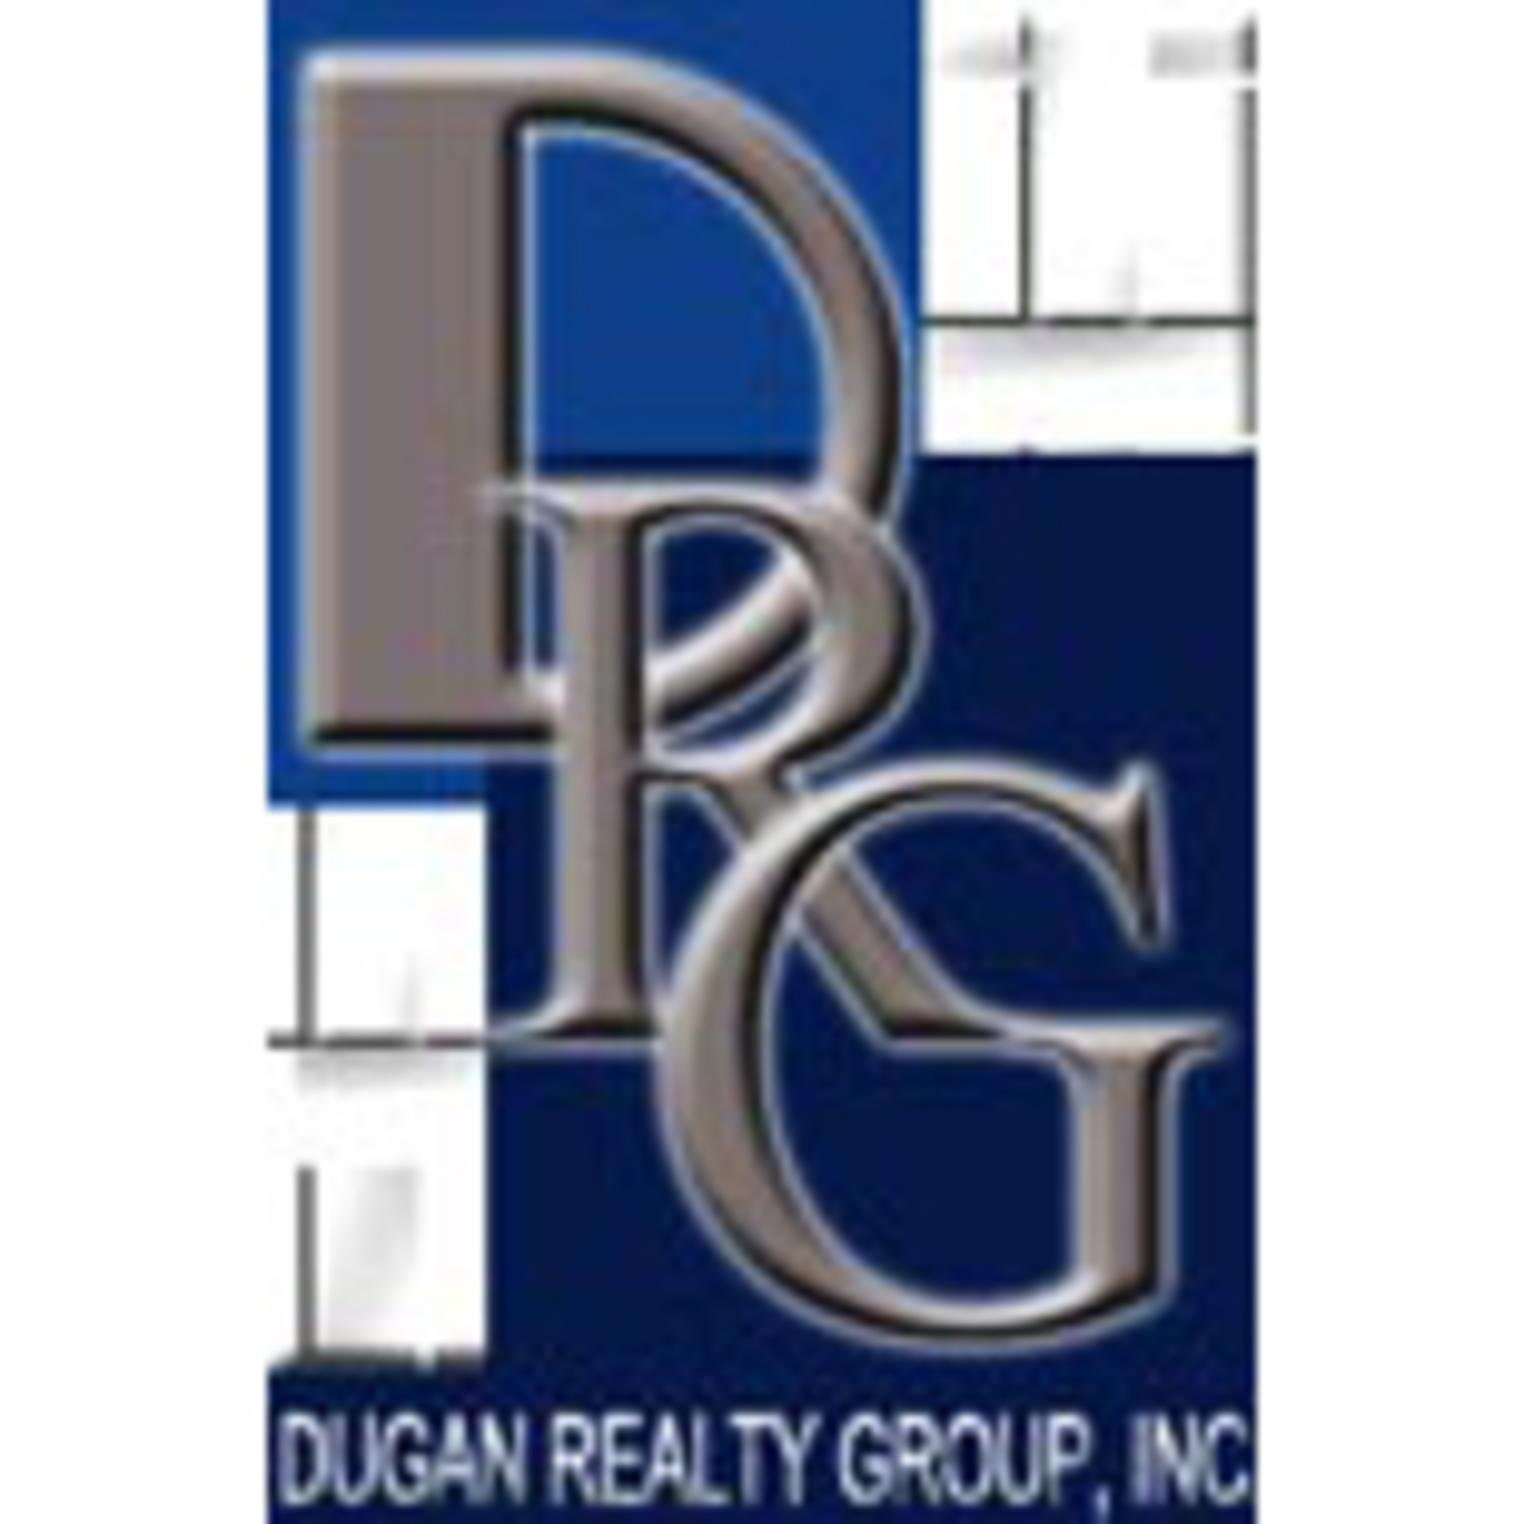 Dugan Realty Group & Appraisal Services